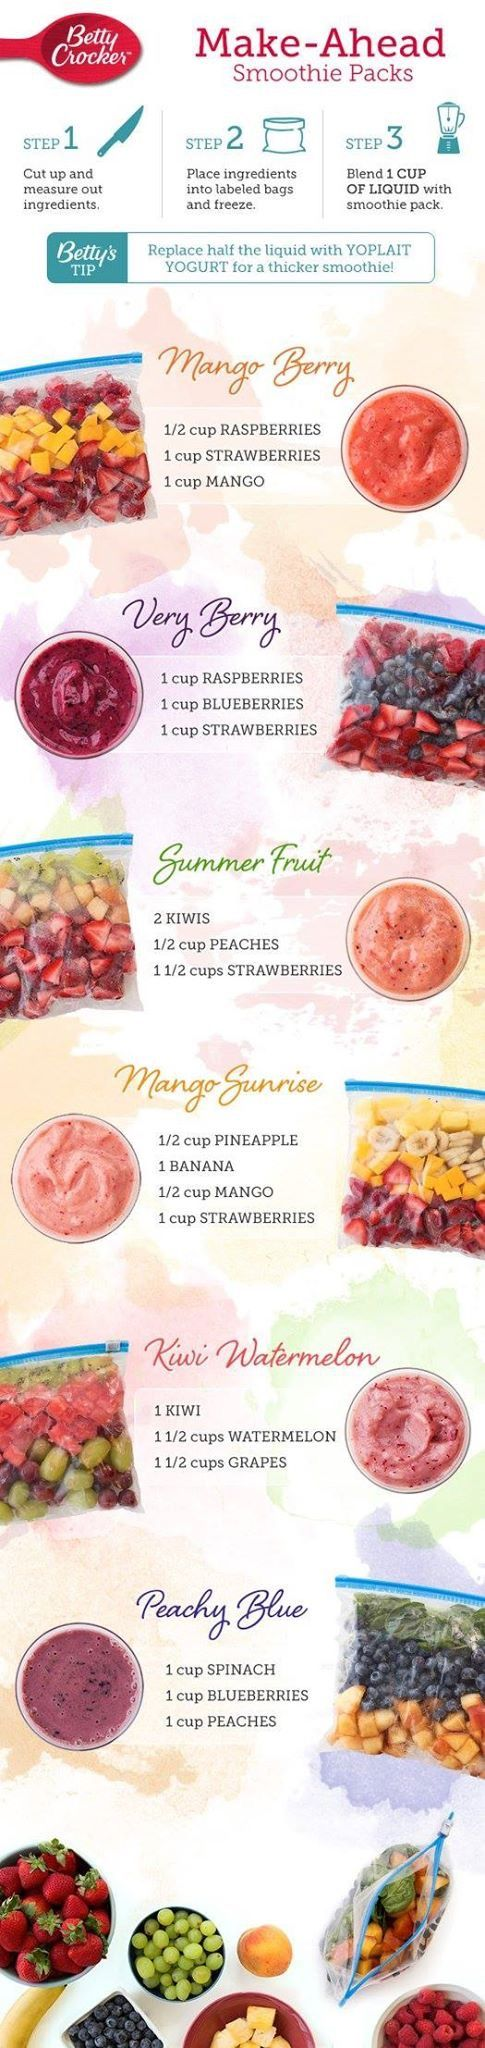 Make-ahead smoothie packs. I love this idea!